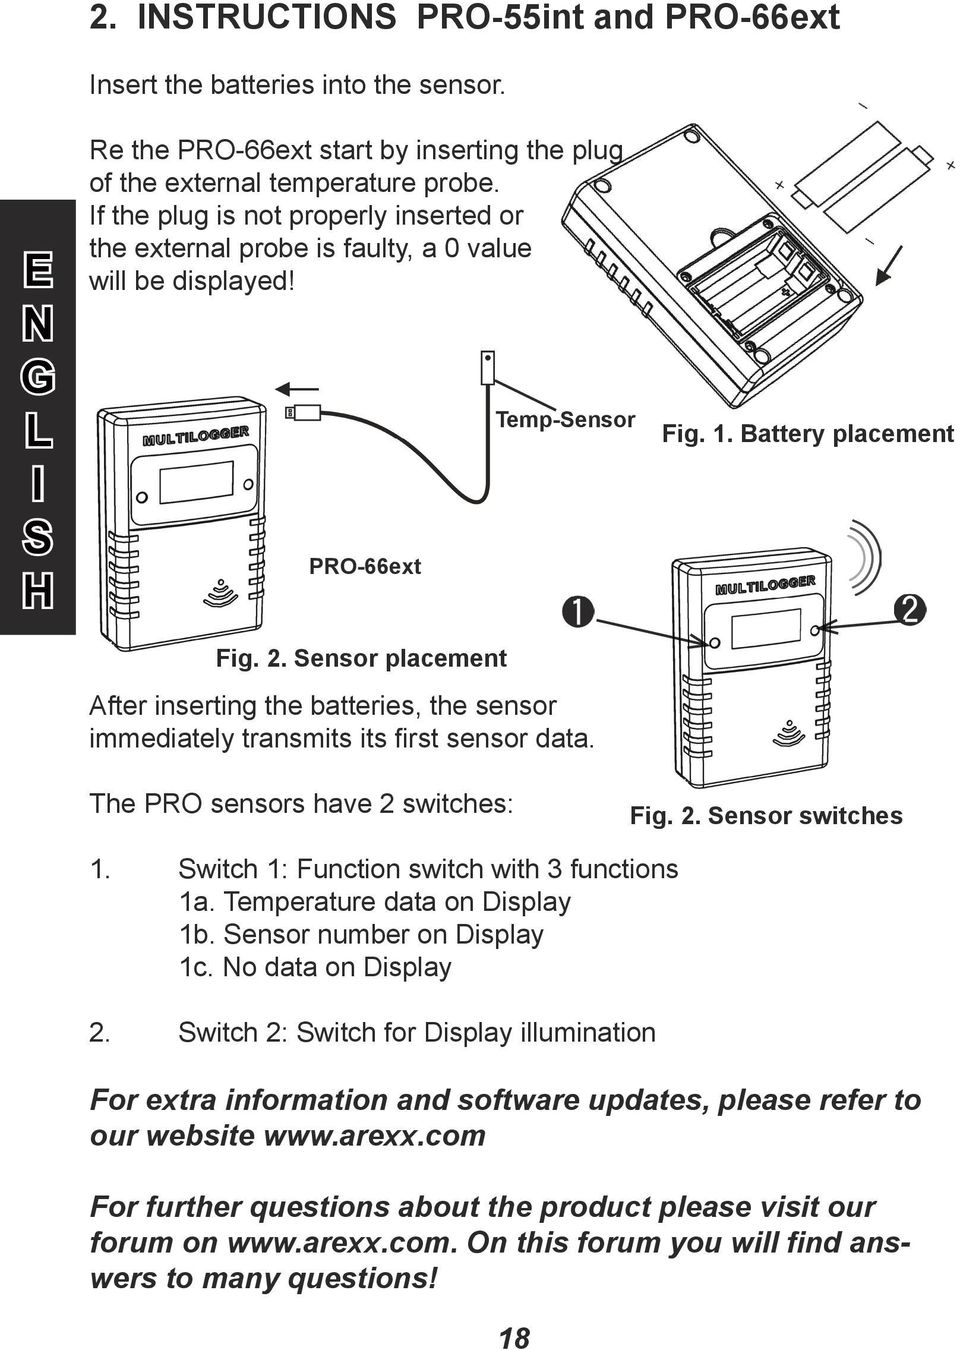 ensor placement Temp-ensor fter inserting the batteries, the sensor immediately transmits its first sensor data. Fig. 1. Battery placement The PRO sensors have 2 switches: Fig. 2. ensor switches 1.